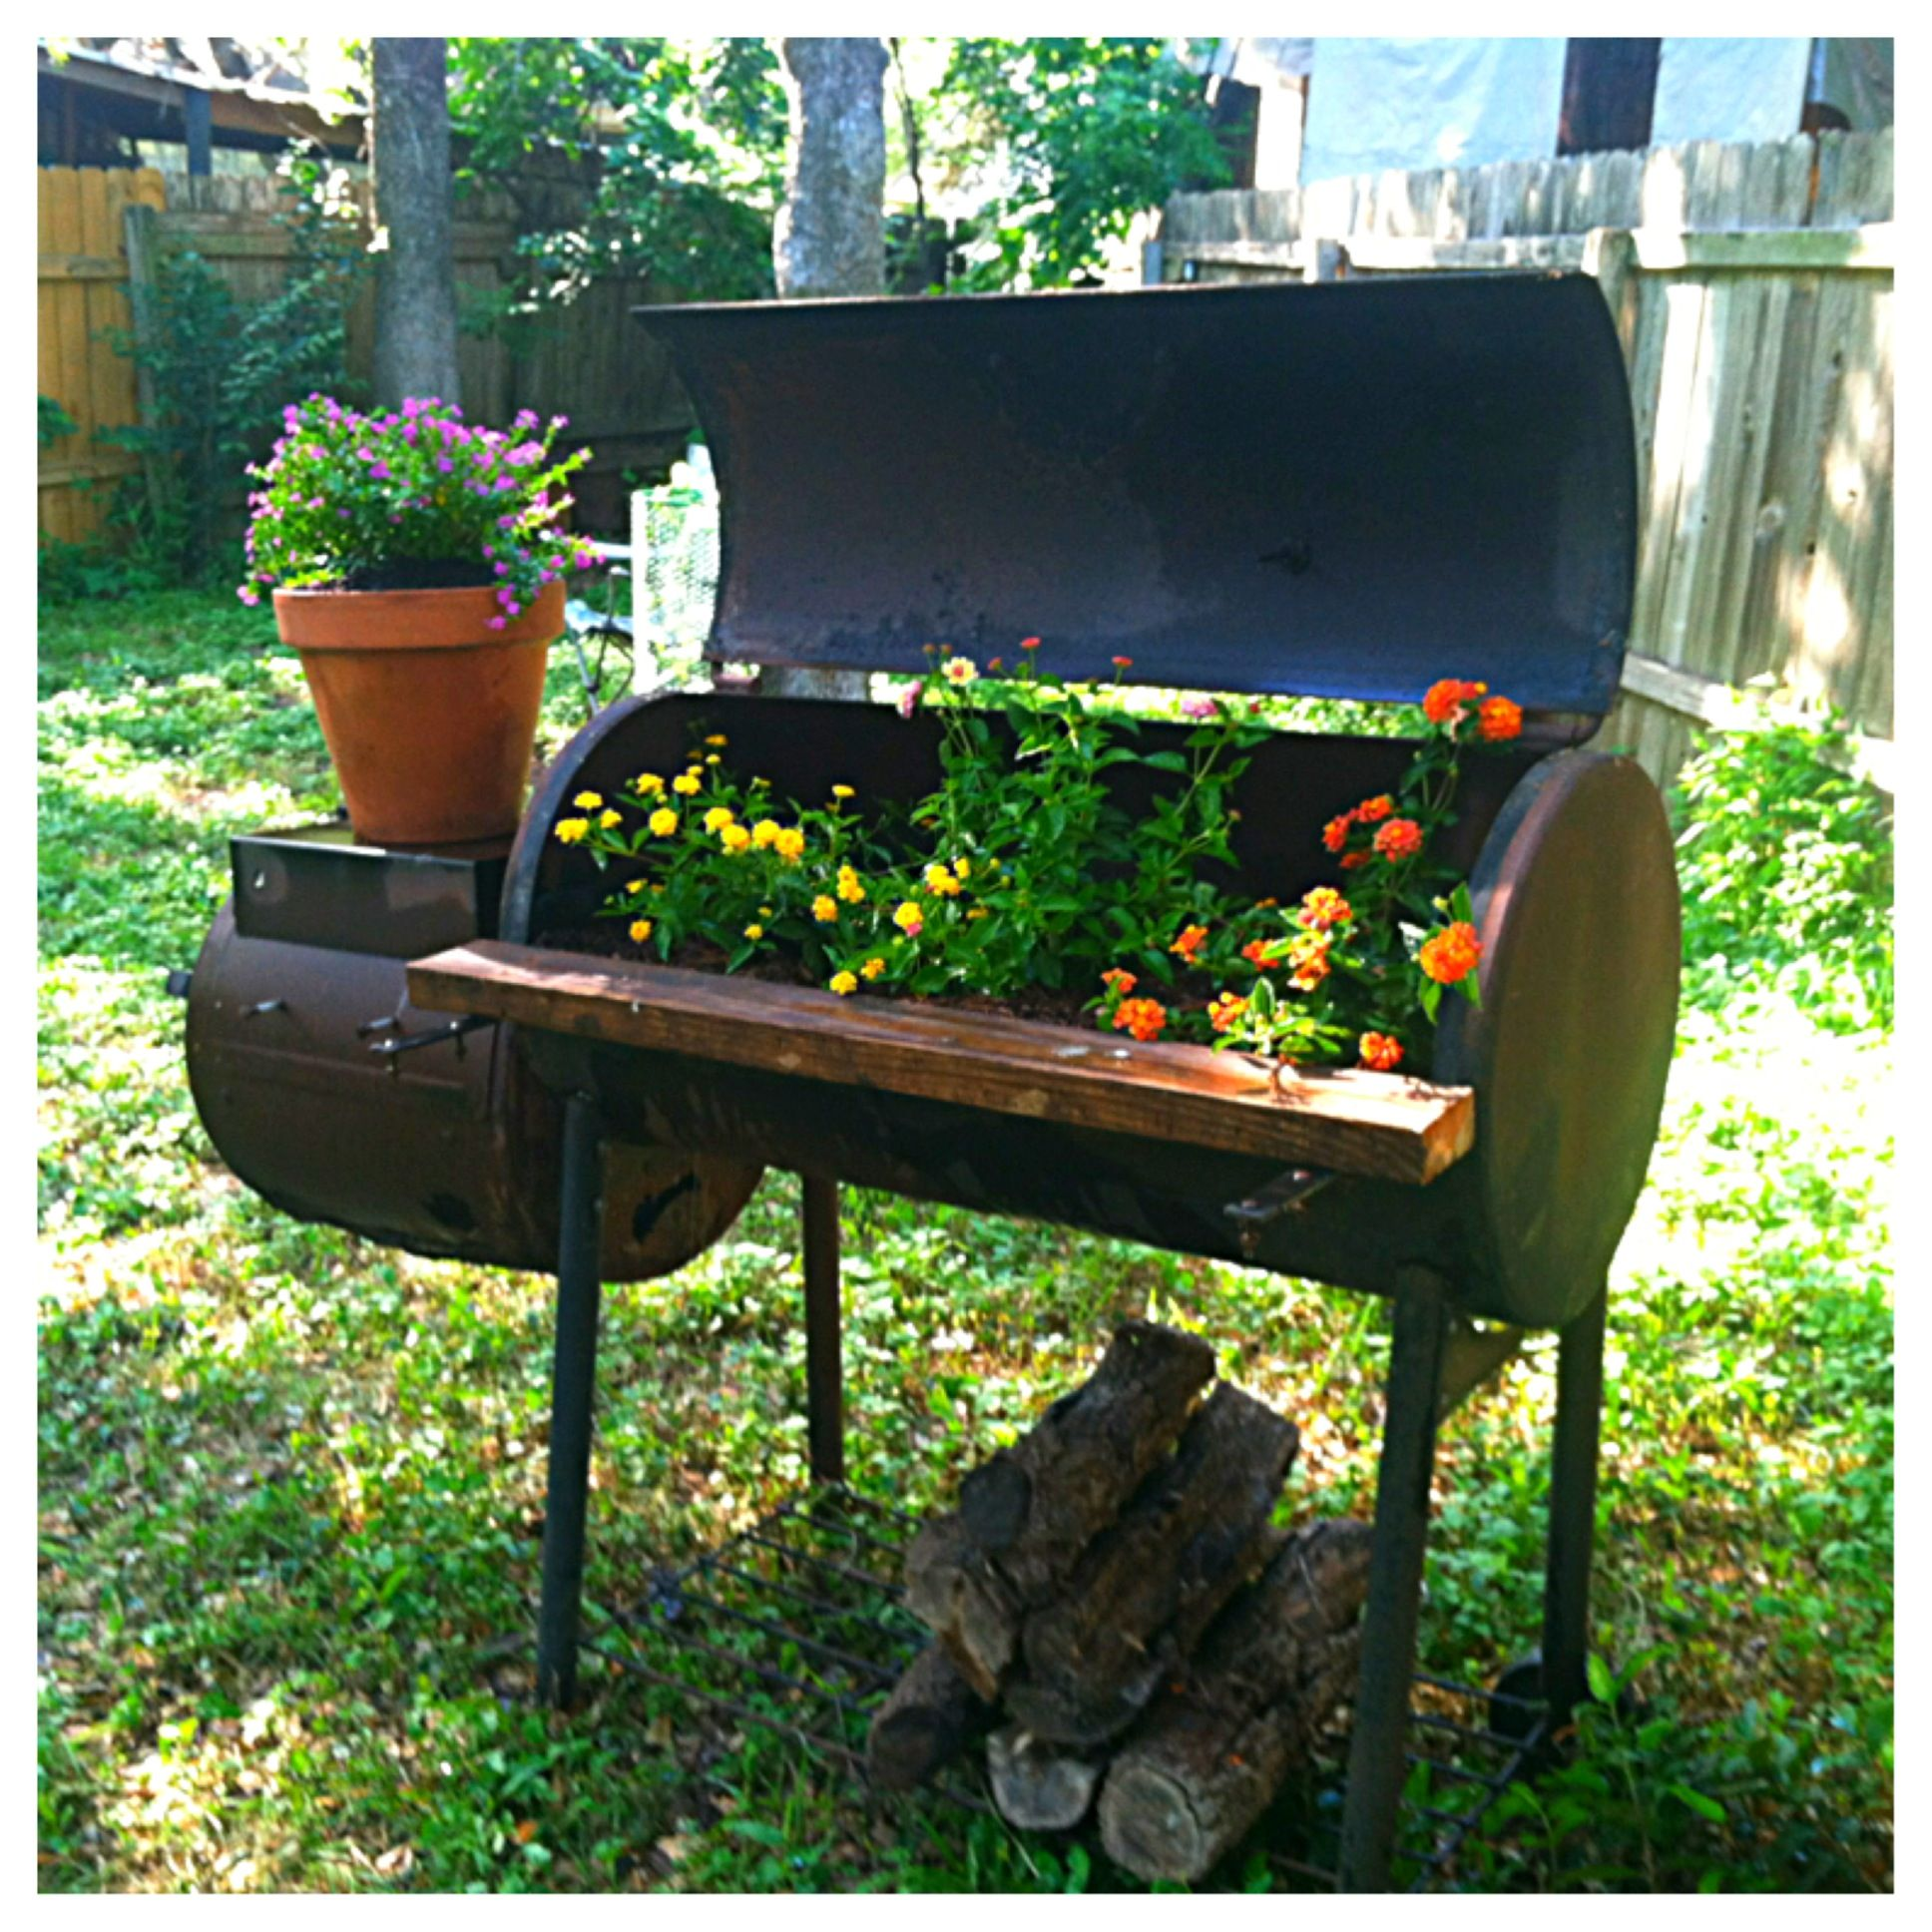 Cheap Gardening Ideas: My Recycled Rusted Old BBQ Pit Made A Lovely Planter